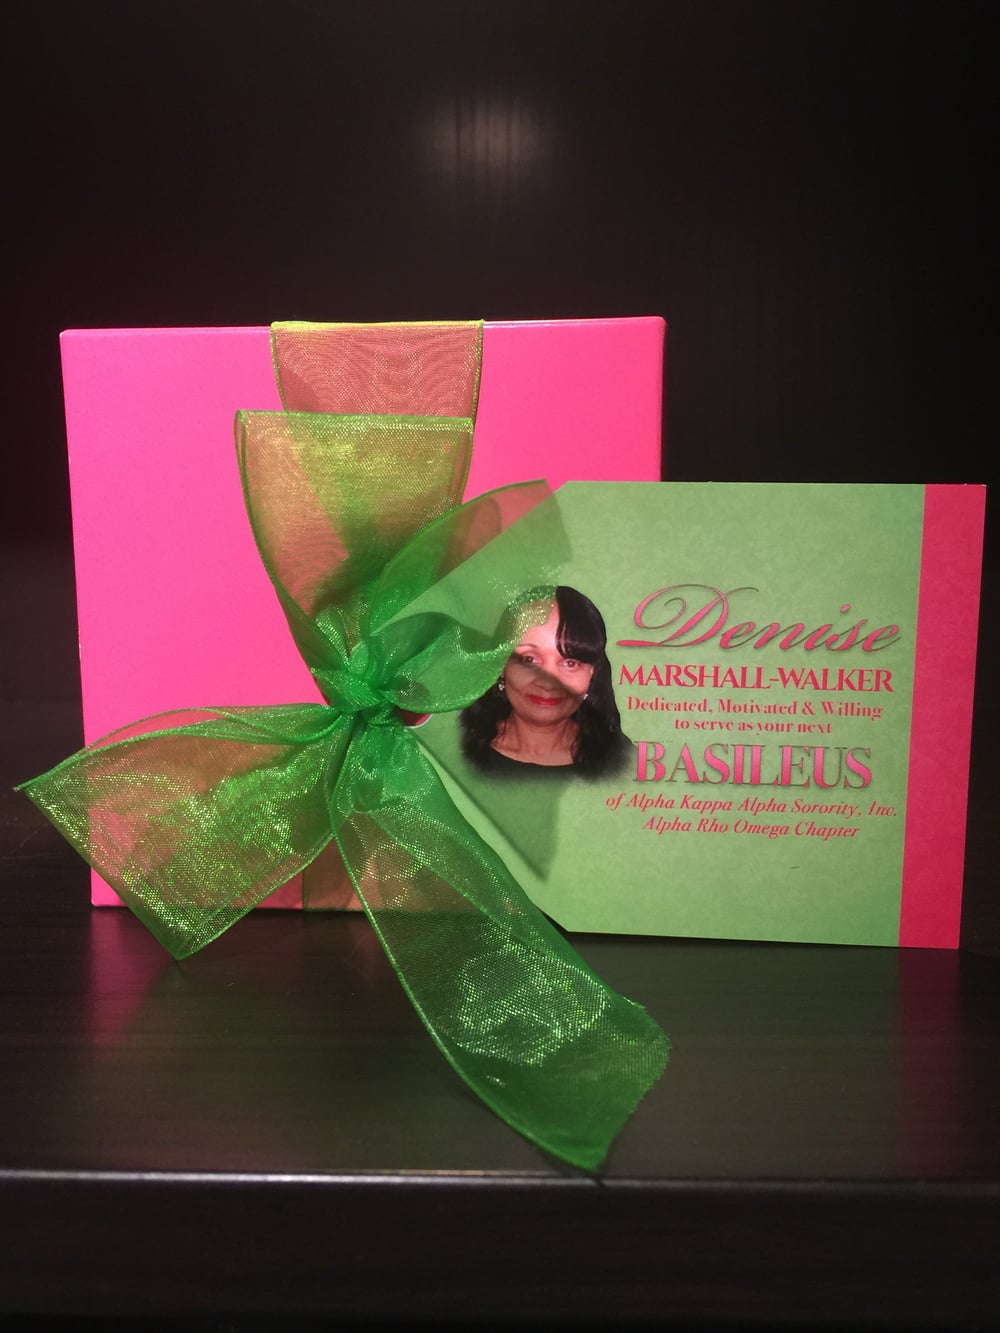 Petite Brownie Favor Boxes - Your Dream Event Awaits You | Brownies Are The New Cake | Dessert Tables and Favors in Metro Detroit, Michigan | Brownies, Cake Pops, Macarons, Brownie Cakes & More